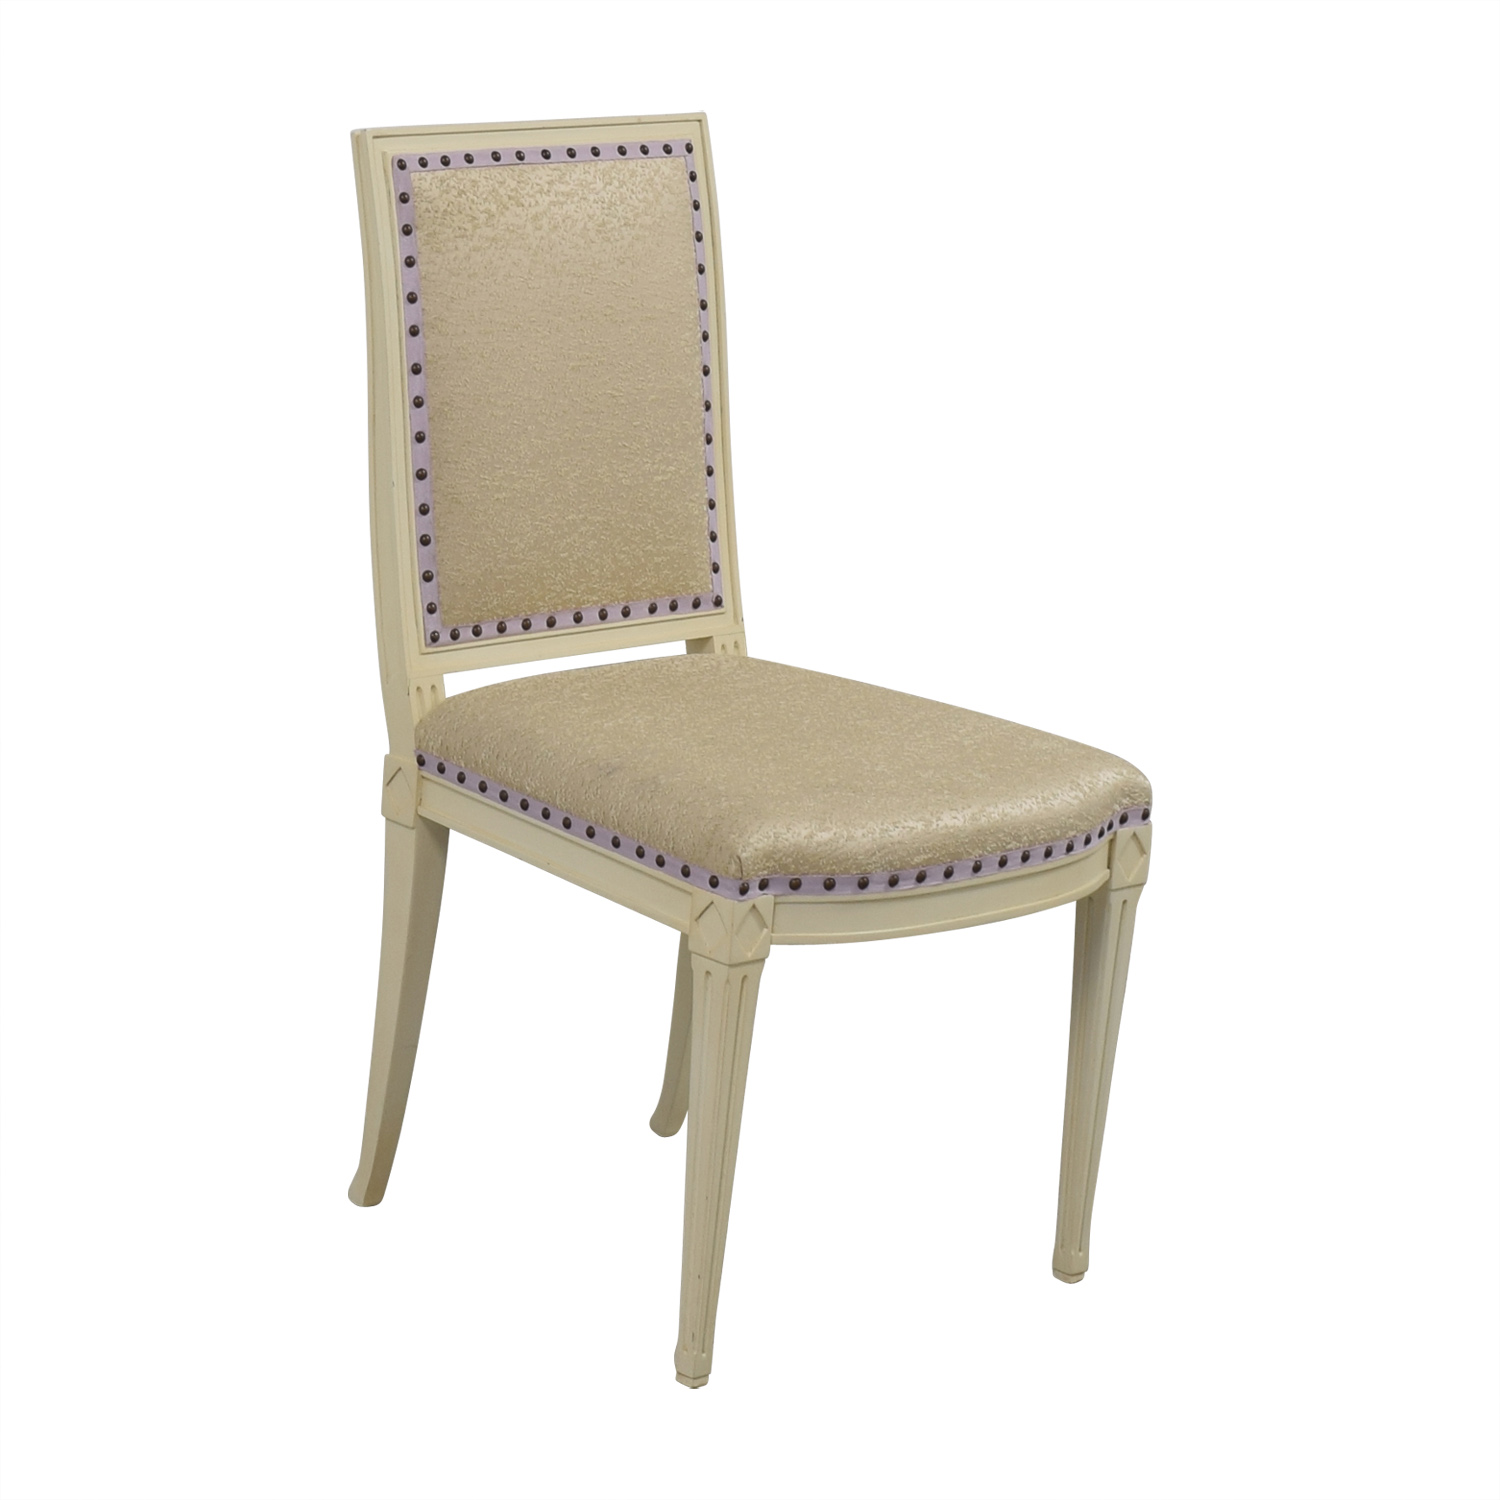 Custom Nailhead Upholstered Desk Chair nyc